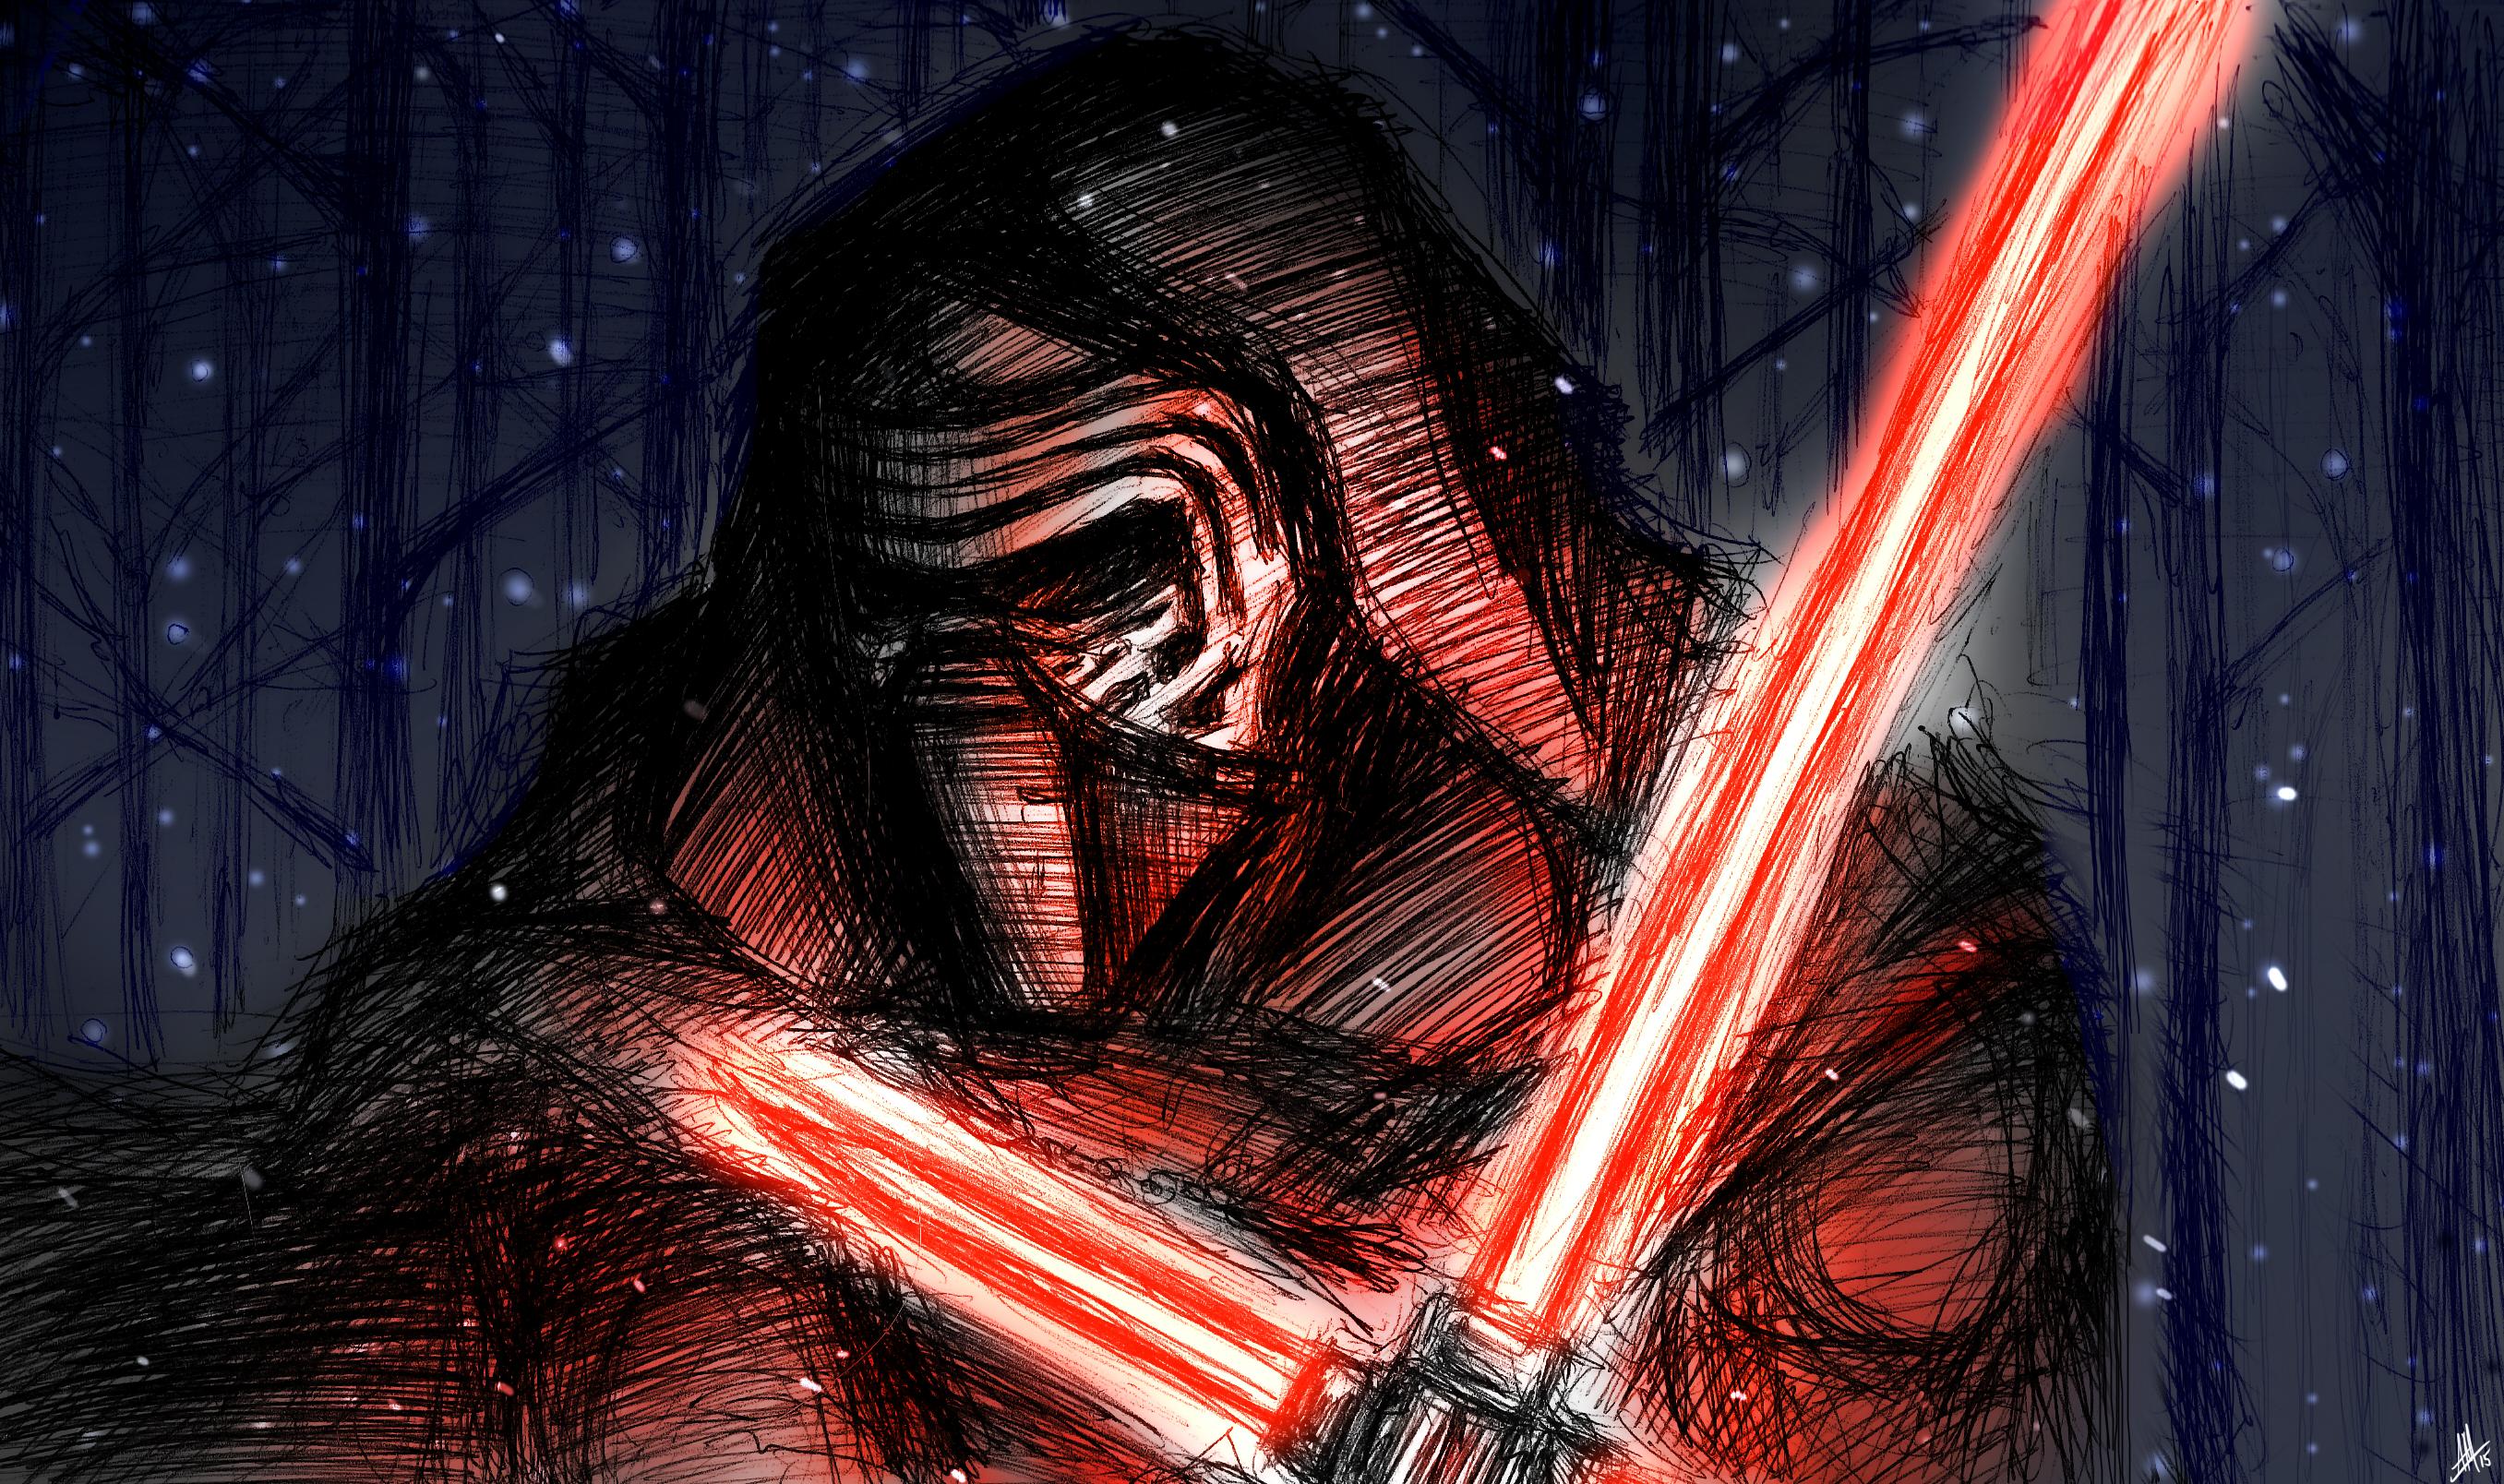 Kylo Ren: Star Wars the Force Awakens by Smudgeandfrank